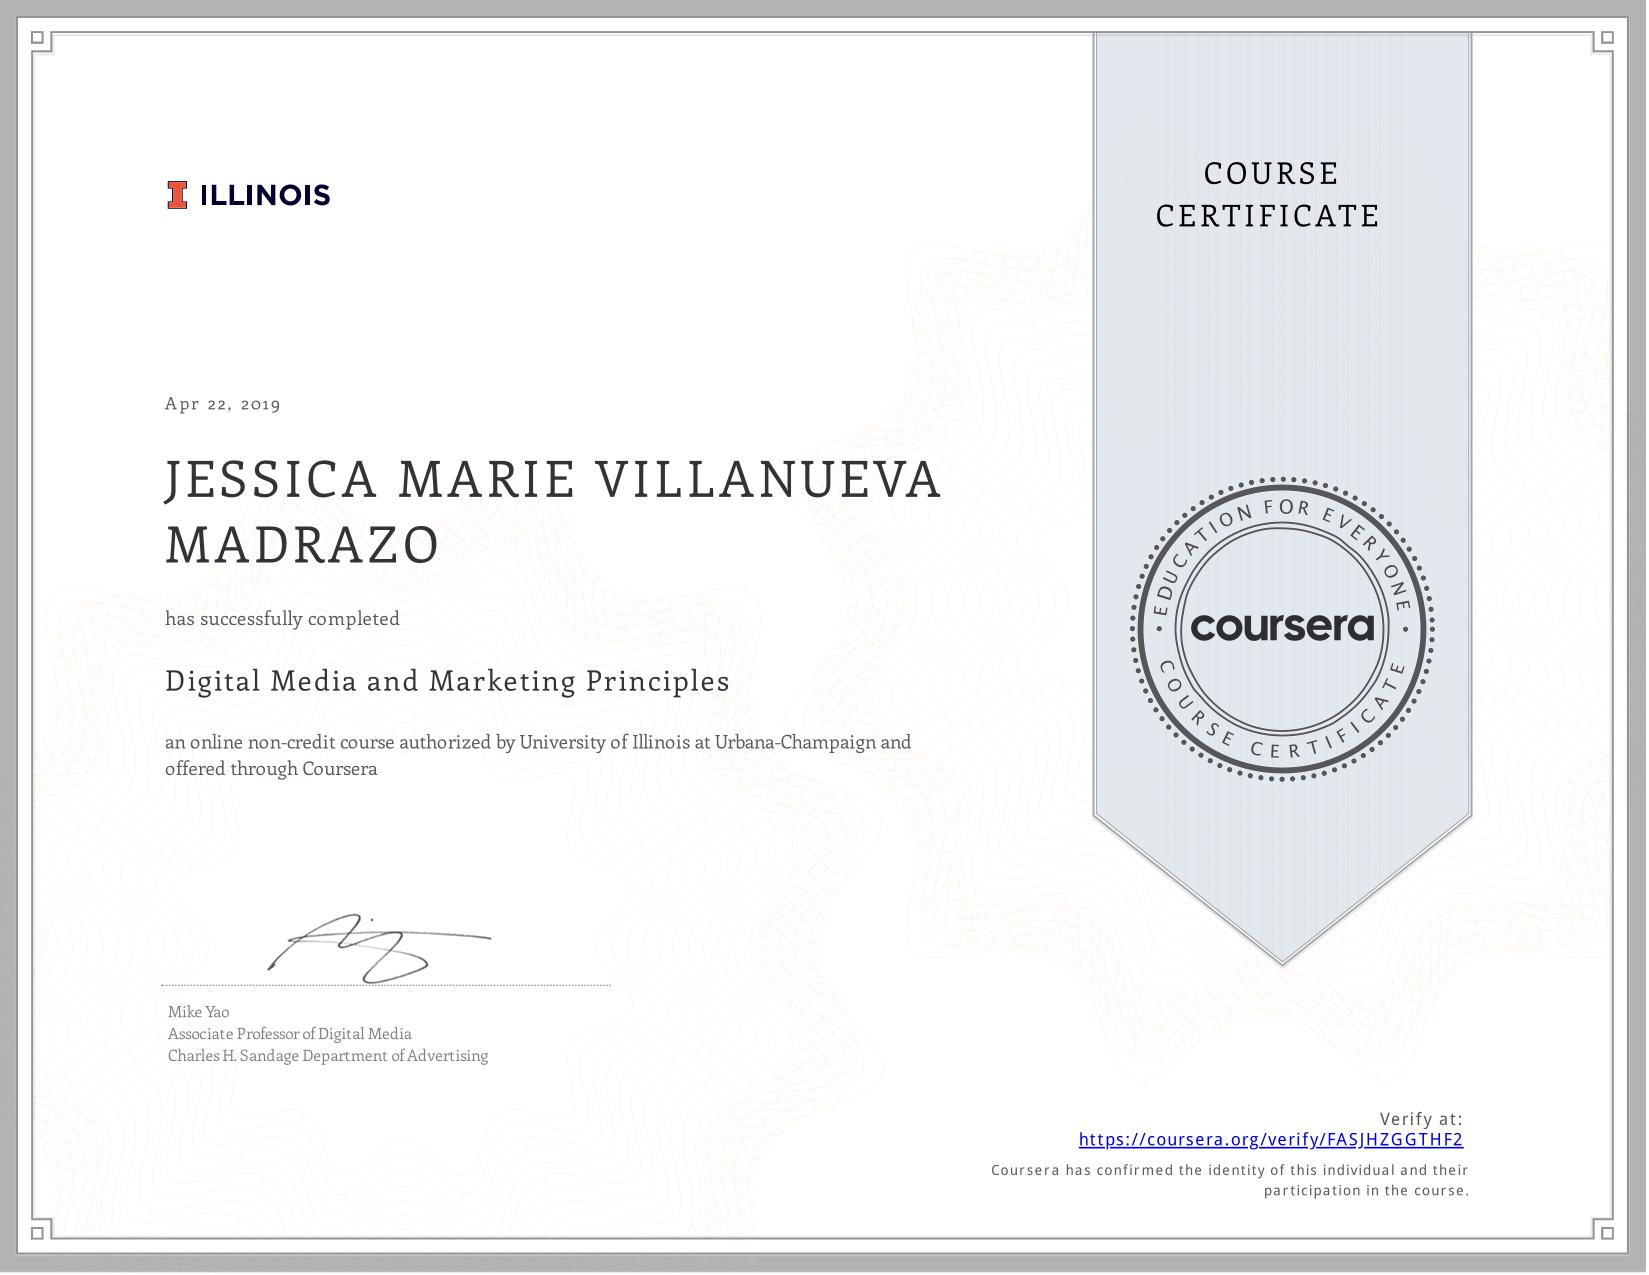 View certificate for JESSICA MARIE VILLANUEVA  MADRAZO, Digital Media and Marketing Principles, an online non-credit course authorized by University of Illinois at Urbana-Champaign and offered through Coursera